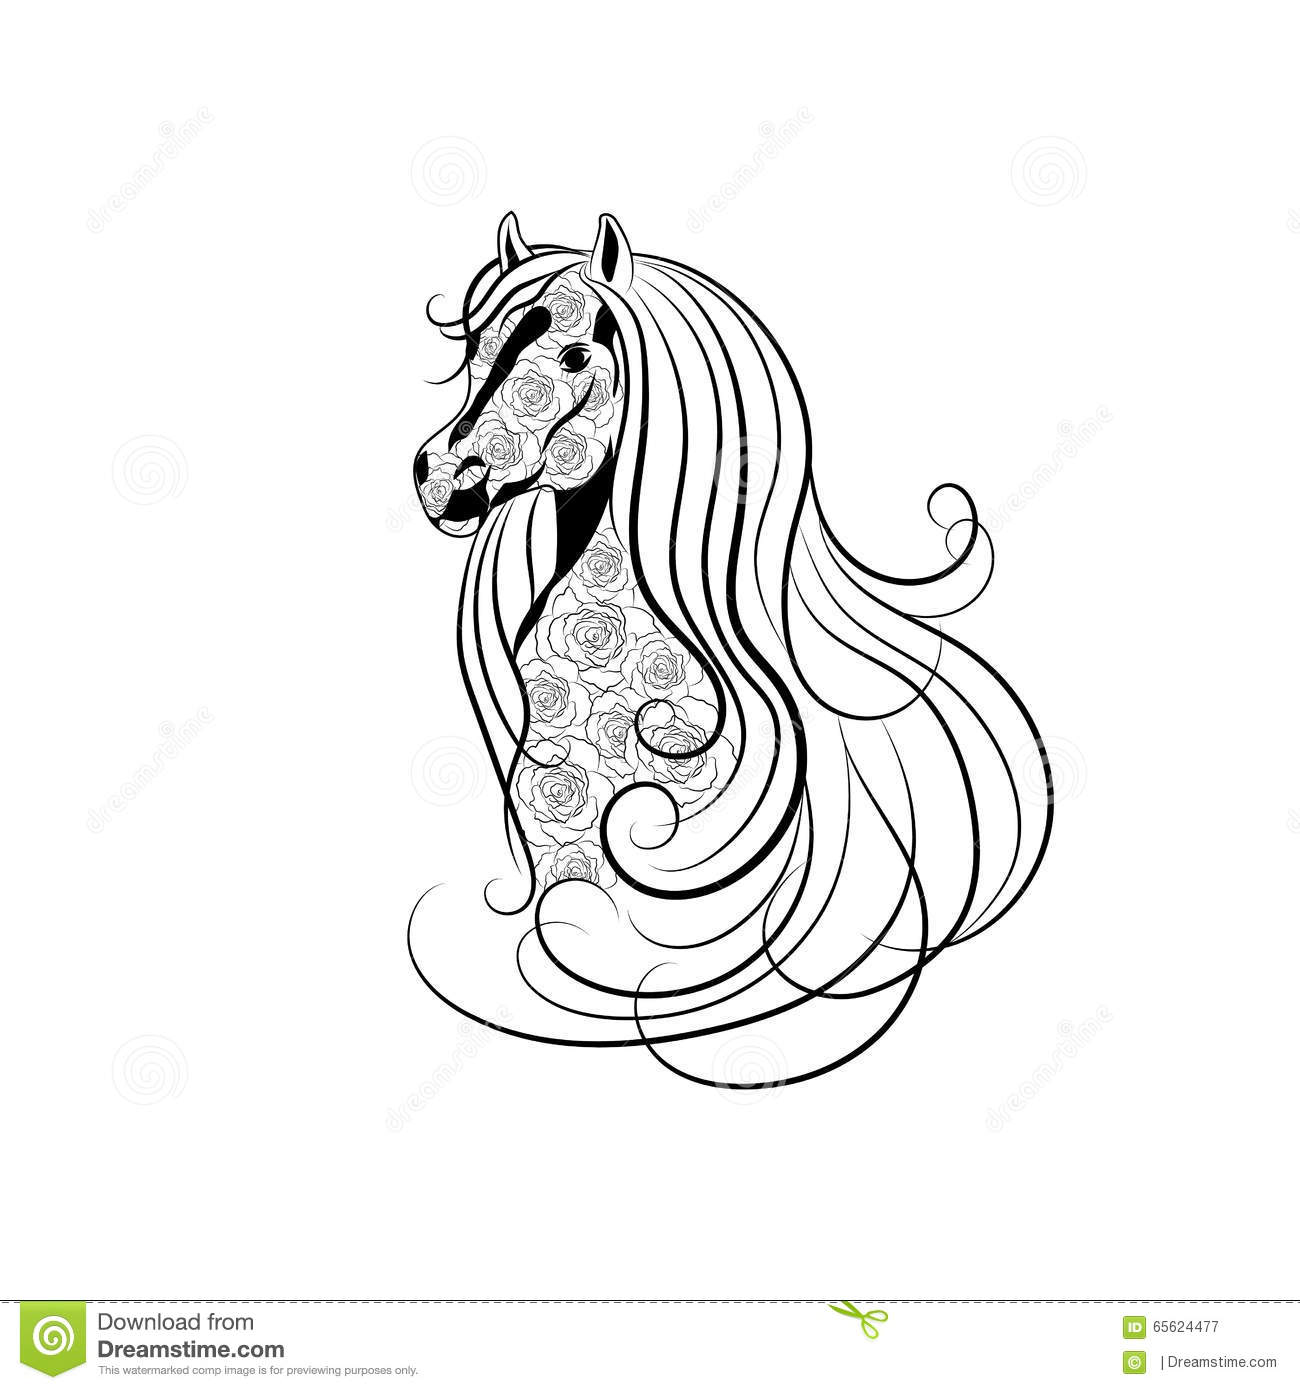 Vector Illustration Of Horse Head Decorated With Floral Pattern In Black And White Style Stock Vector Illustration Of Mammal Line 65624477